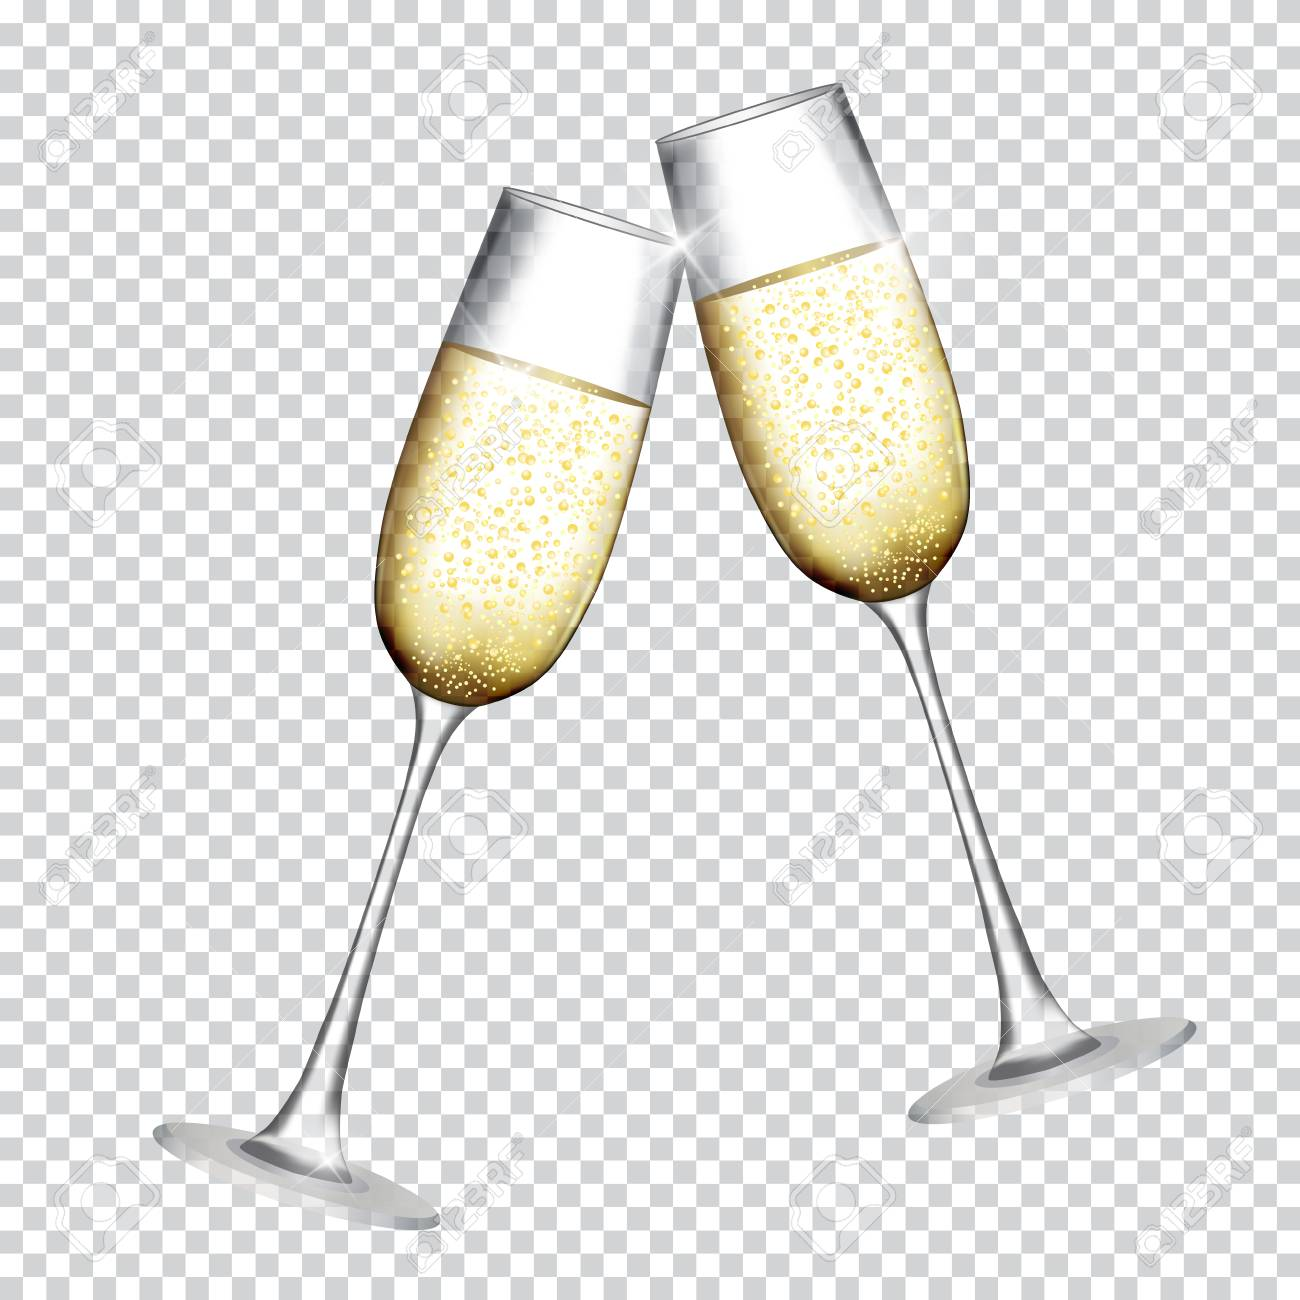 Two Glass of Champagne Isolated on Transparent Background. Vector Illustration - 87534326